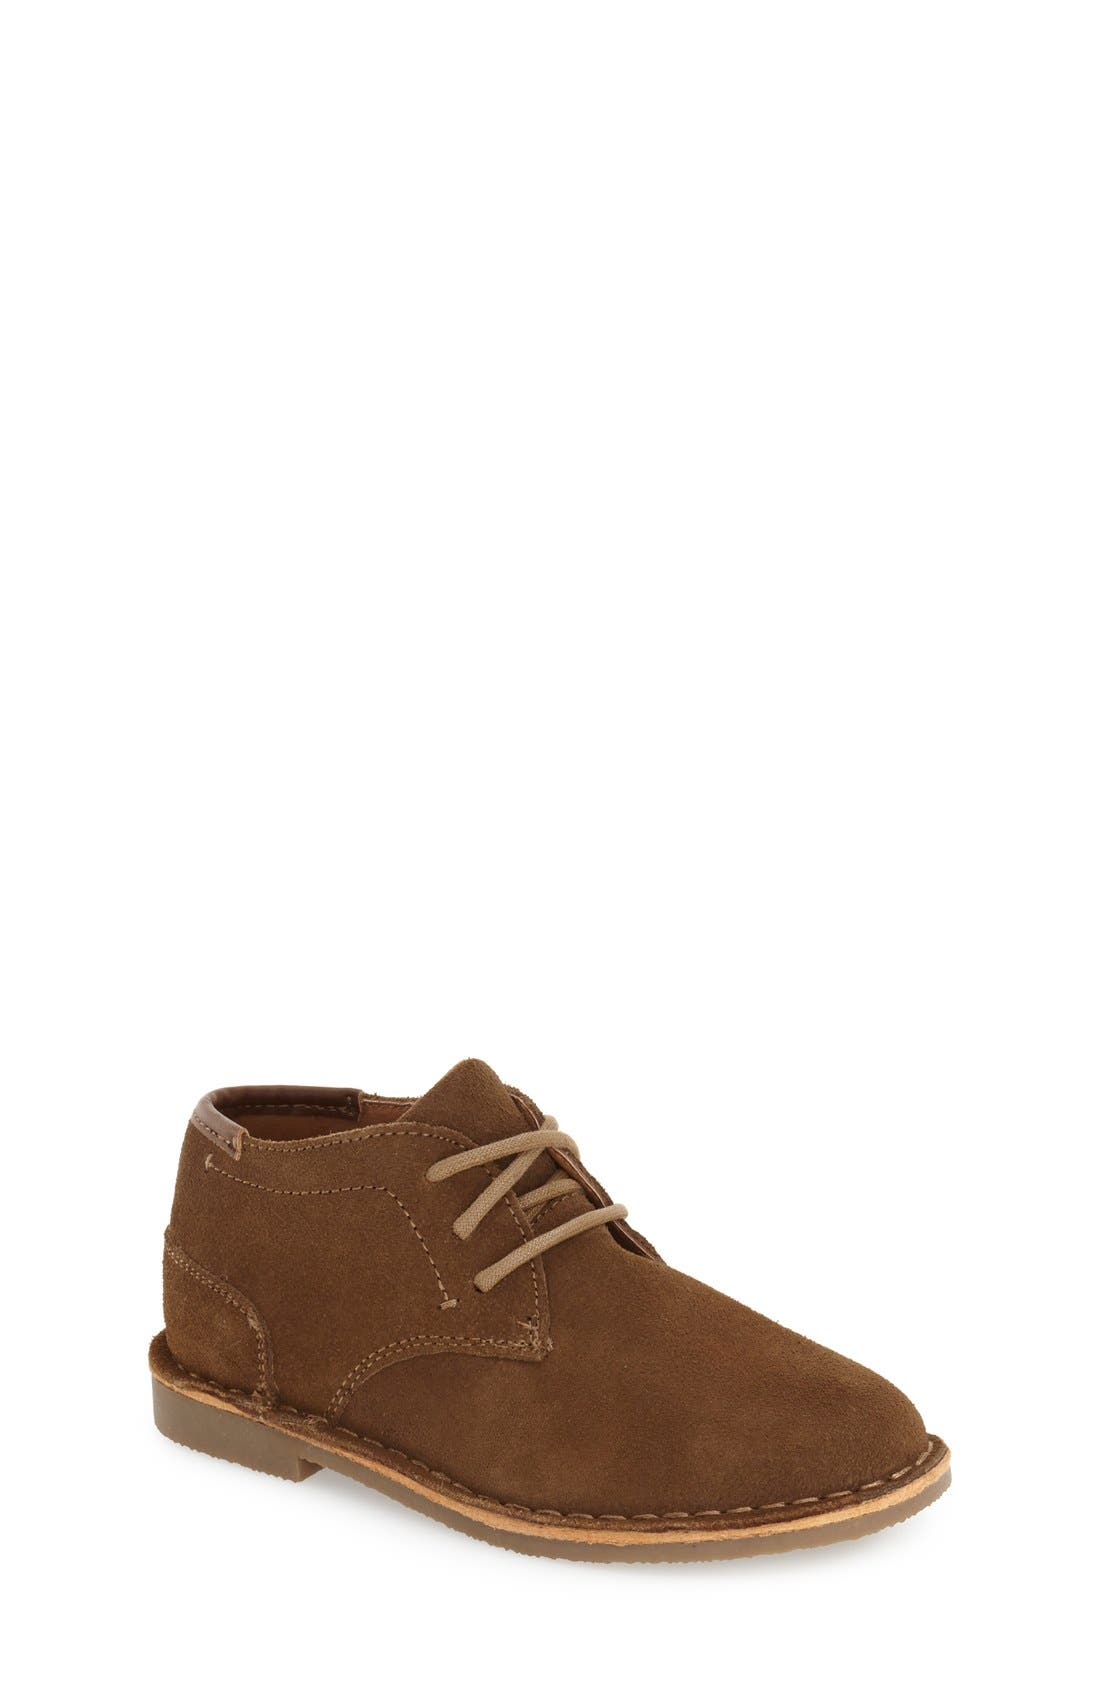 Kenneth Cole New York Real Deal Chukka Boot (Walker, Toddler, Little Kid & Big Kid)